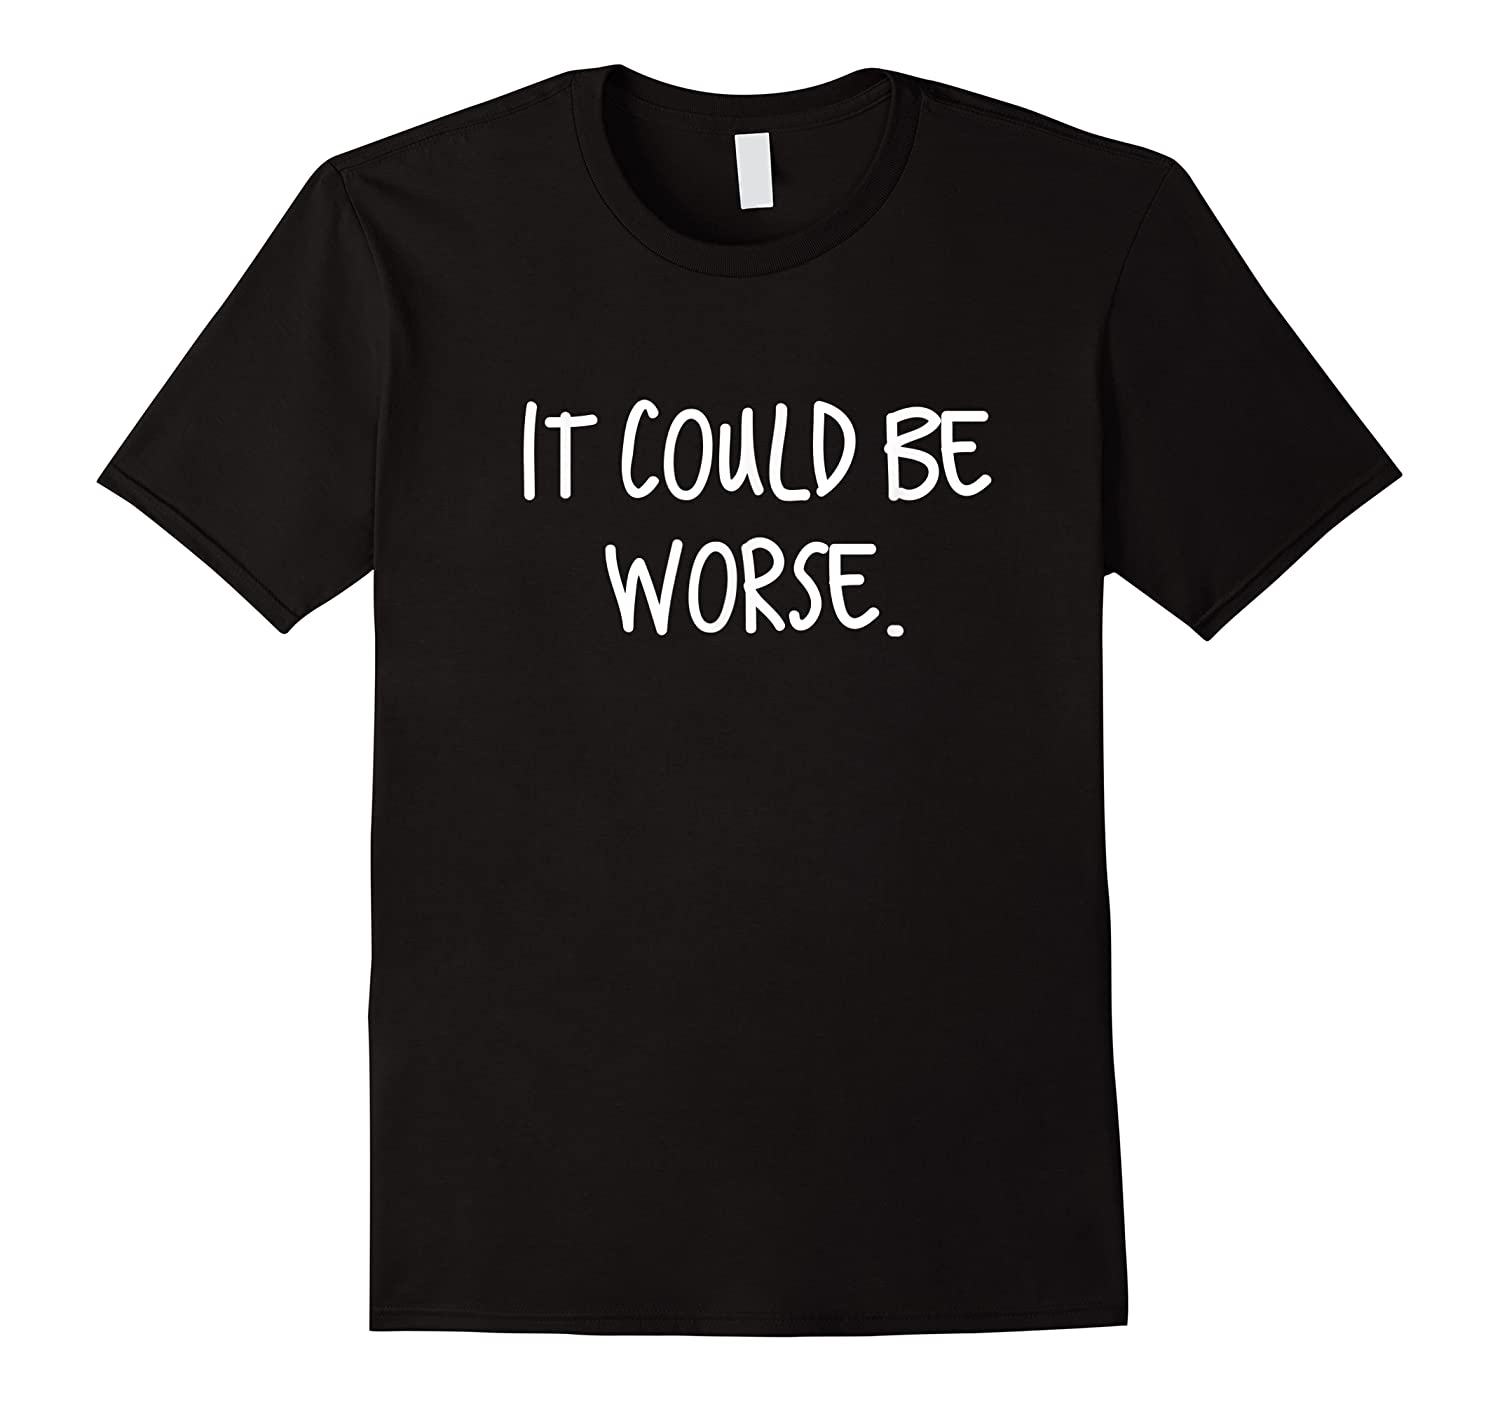 It Could Be Worse Funny Encouraget T-shirt